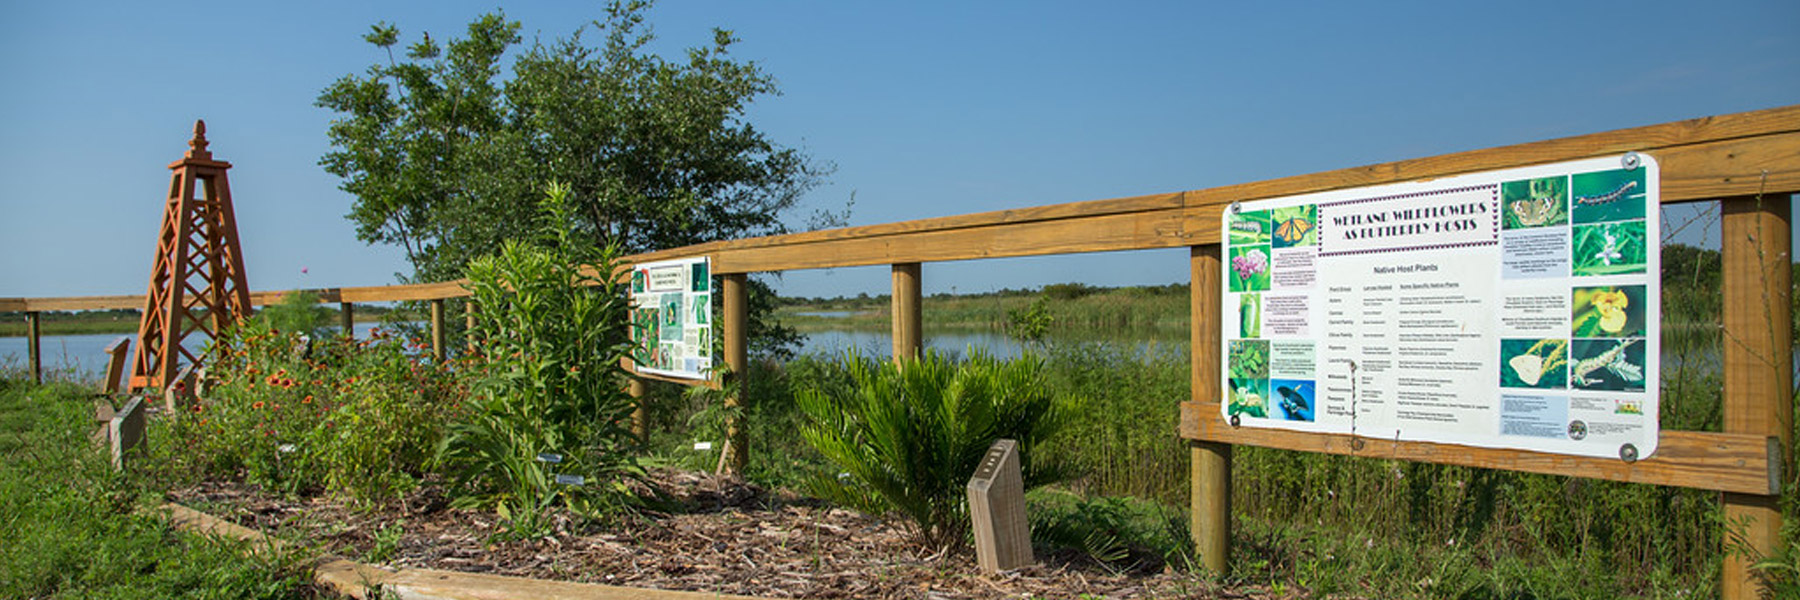 nature park entrance and sign